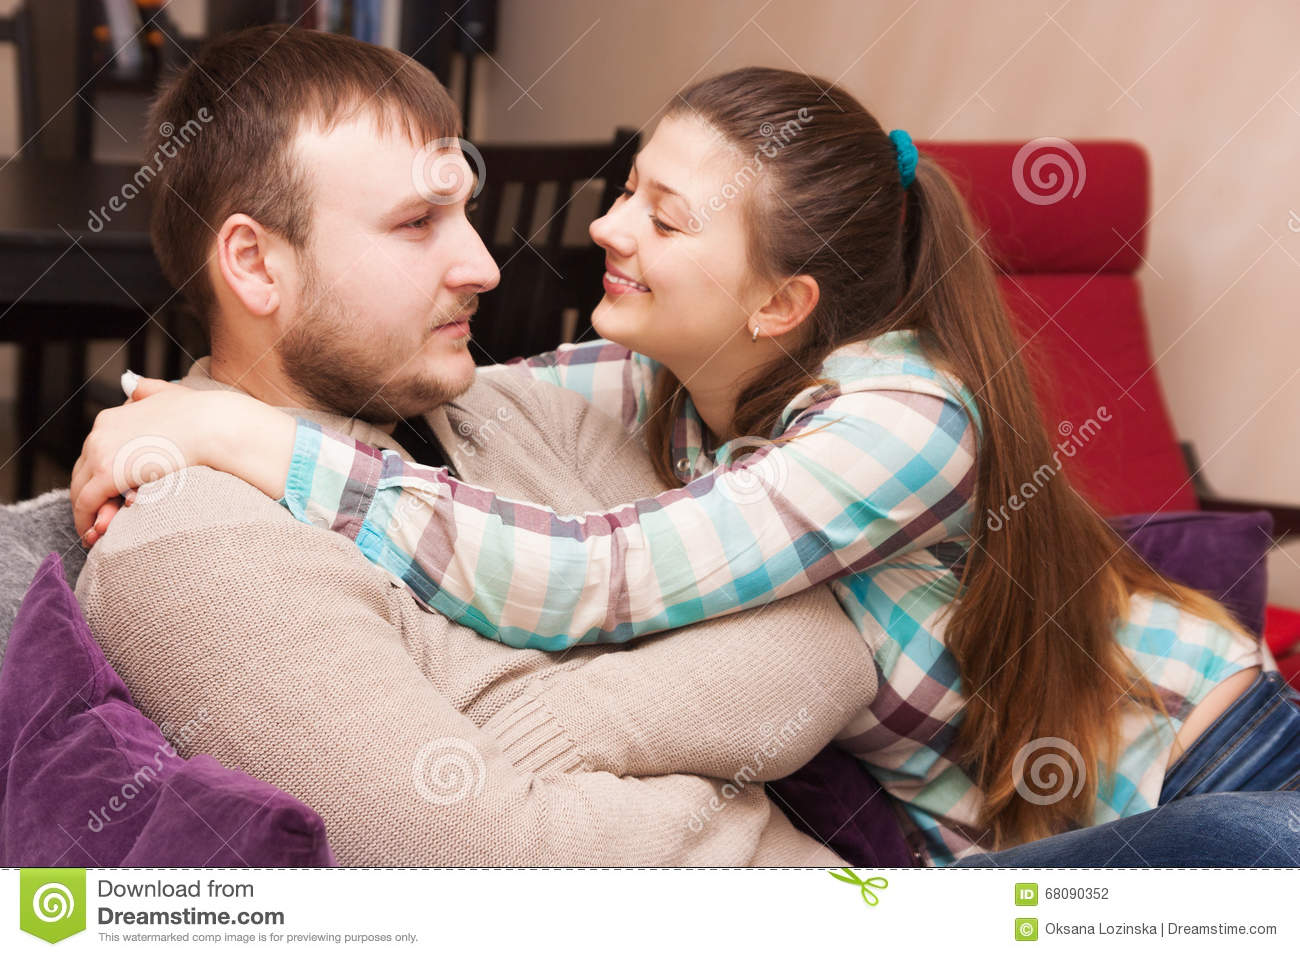 A young couple. Reconciliation after a conflictconflict